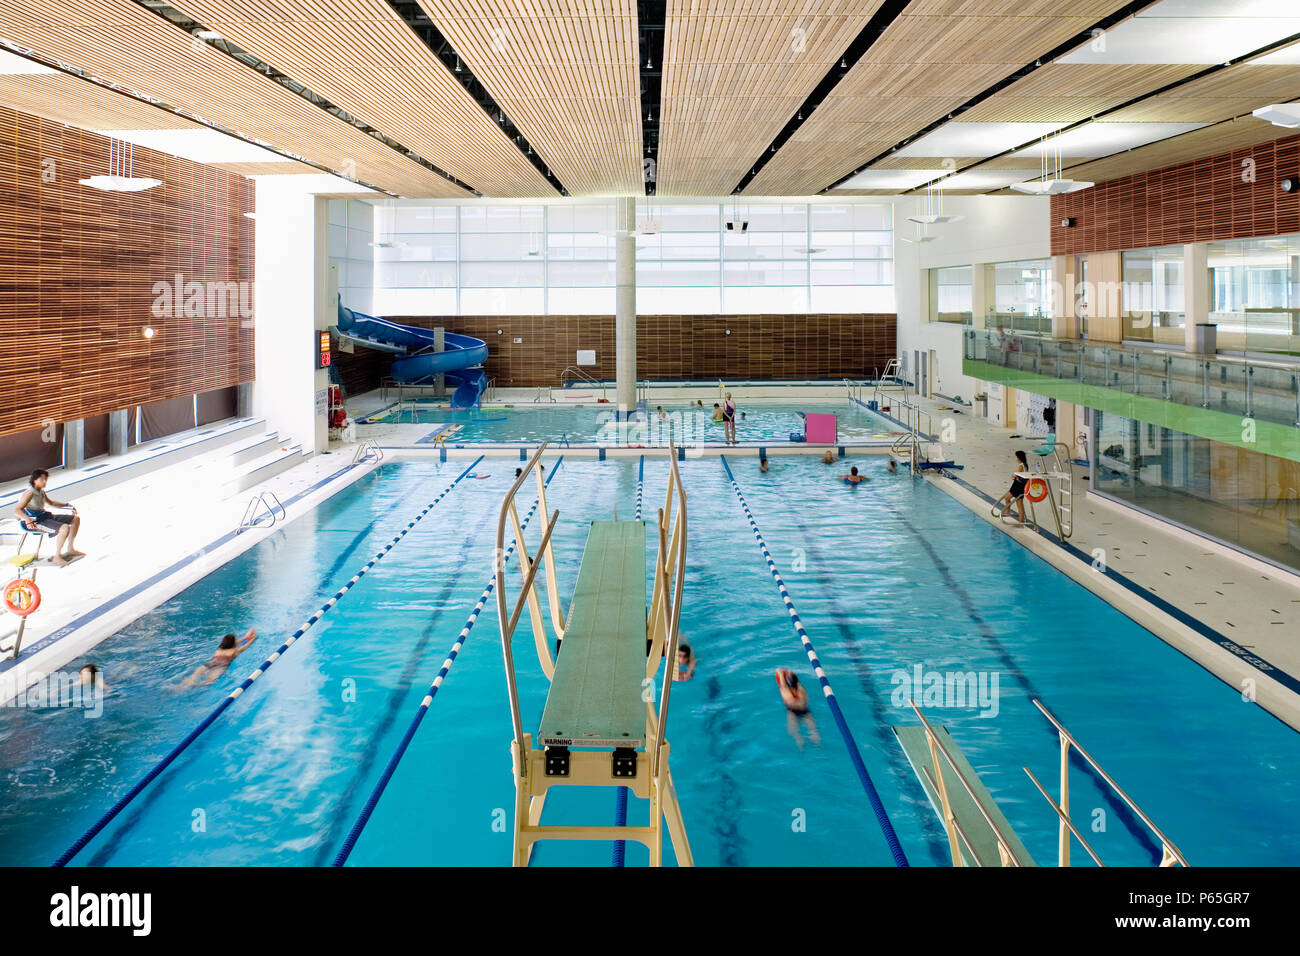 Diving board at swimming pool Stock Photo: 210335307 - Alamy